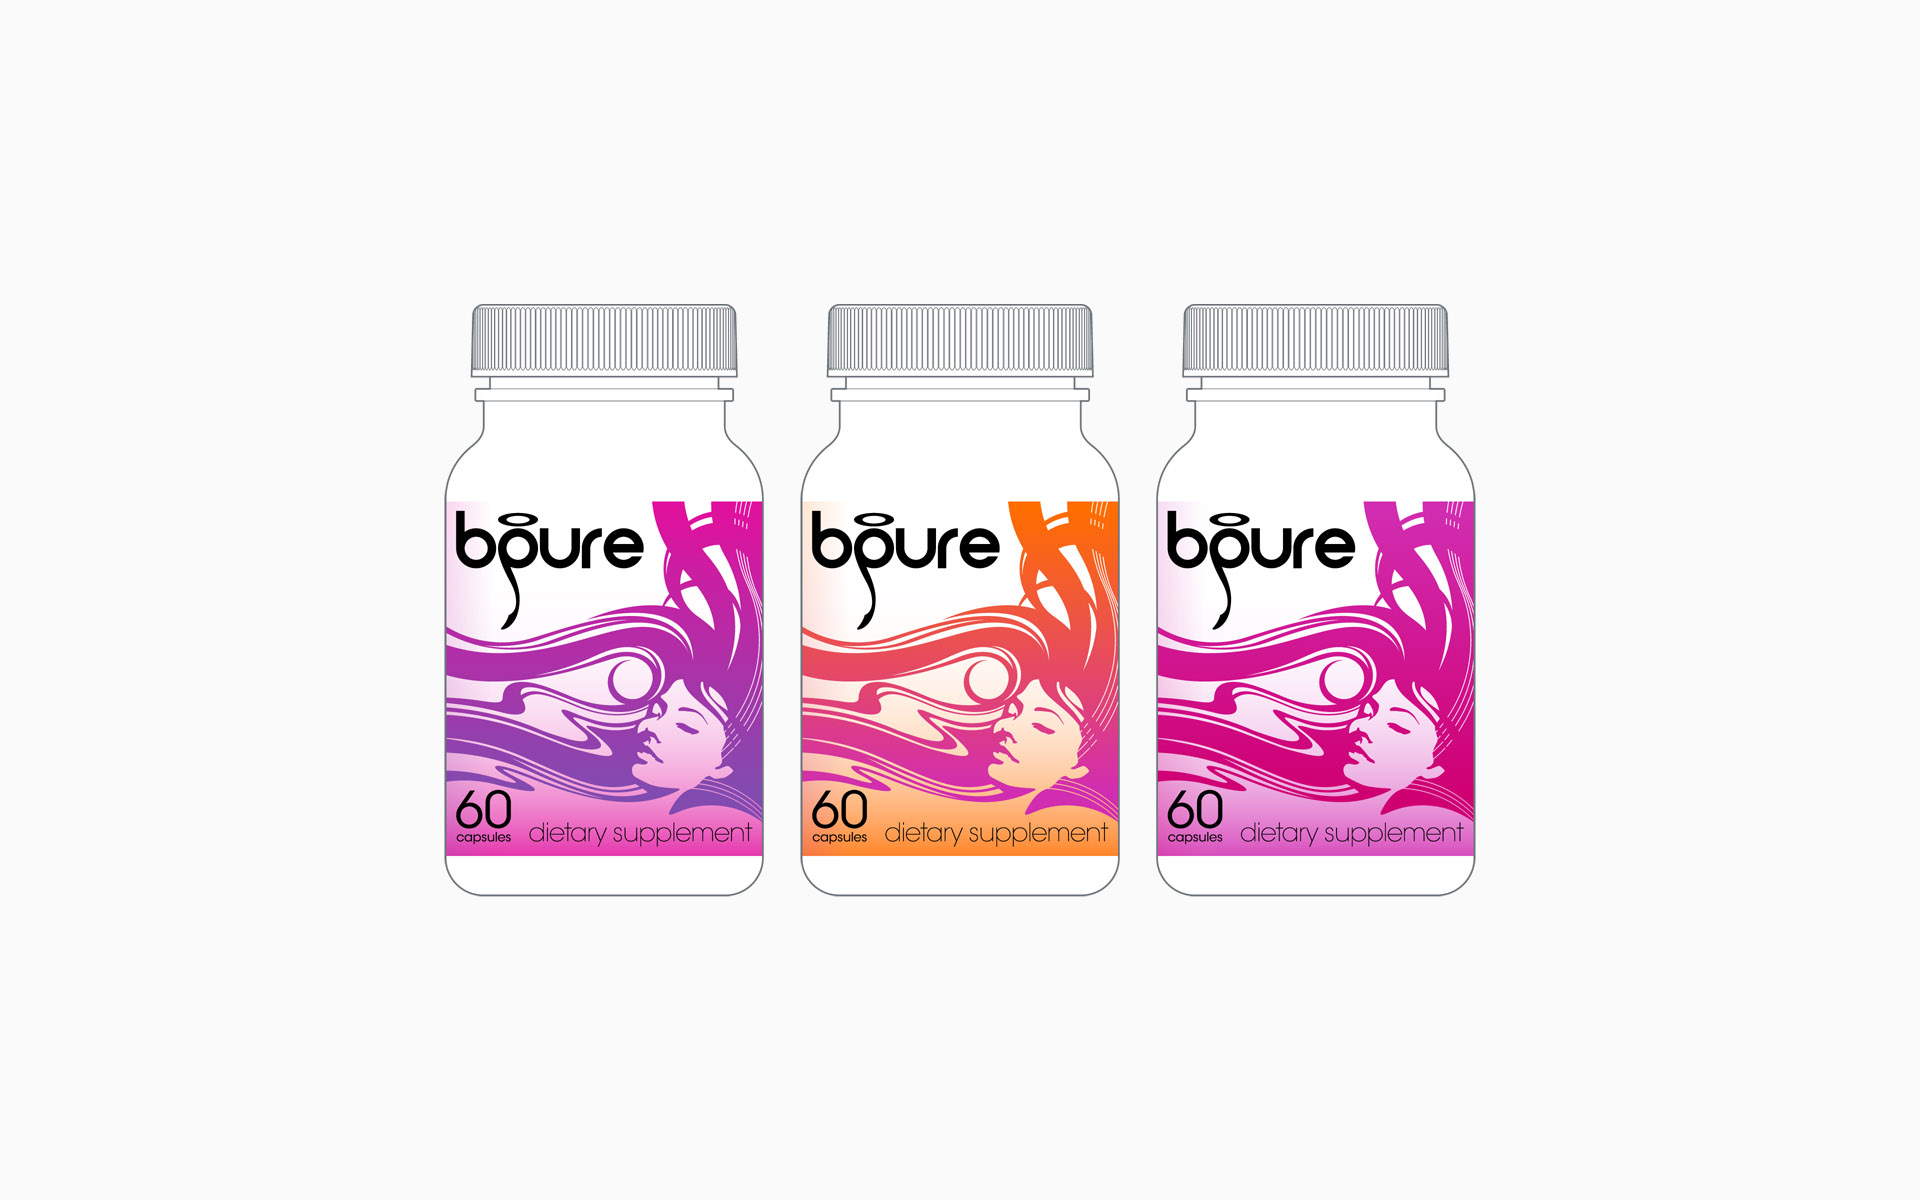 Lifestyle Nutrition bPure Labeling